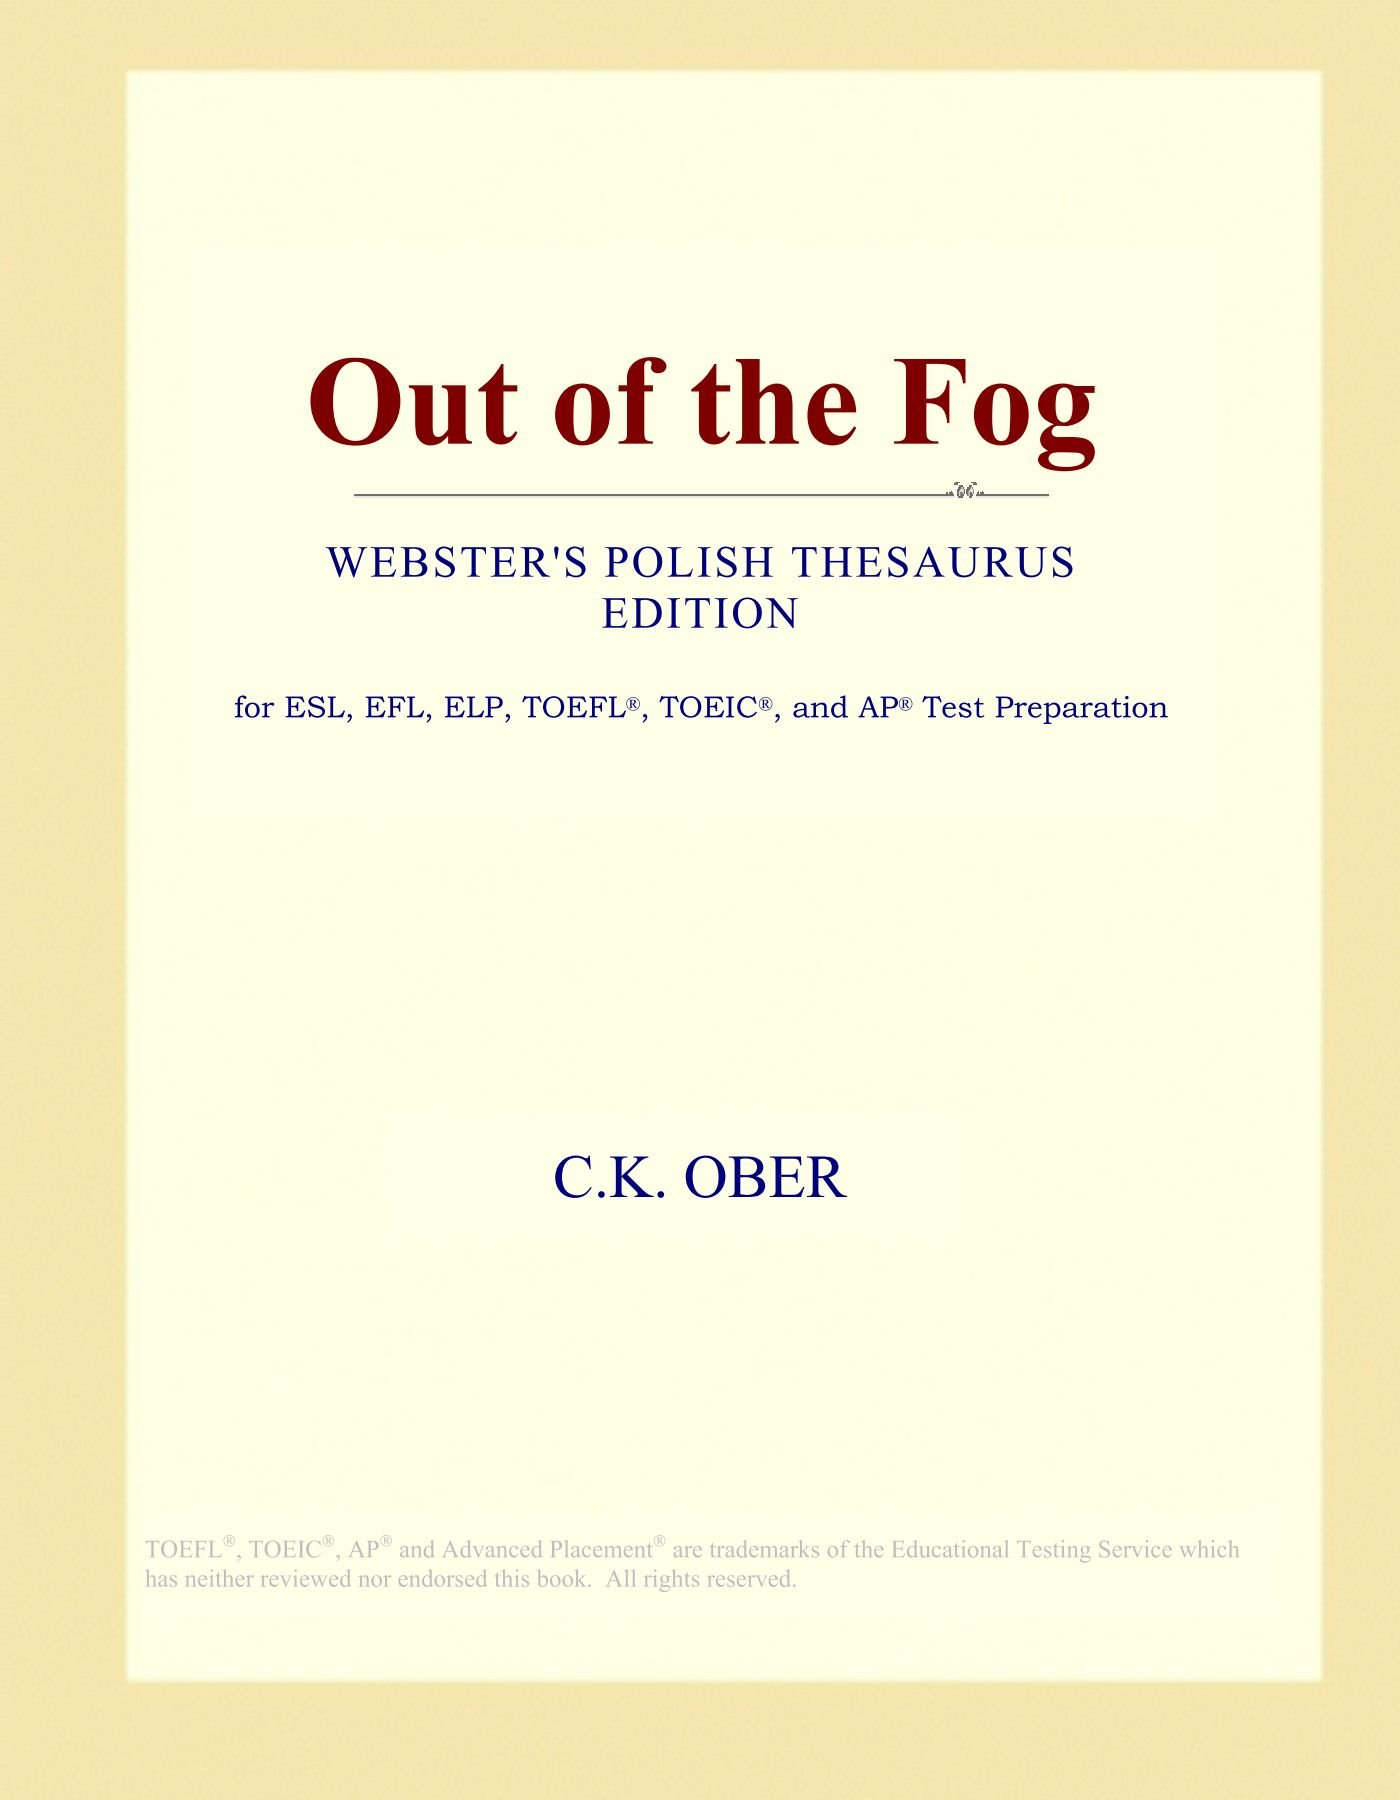 Out of the Fog (Webster's Polish Thesaurus Edition) pdf